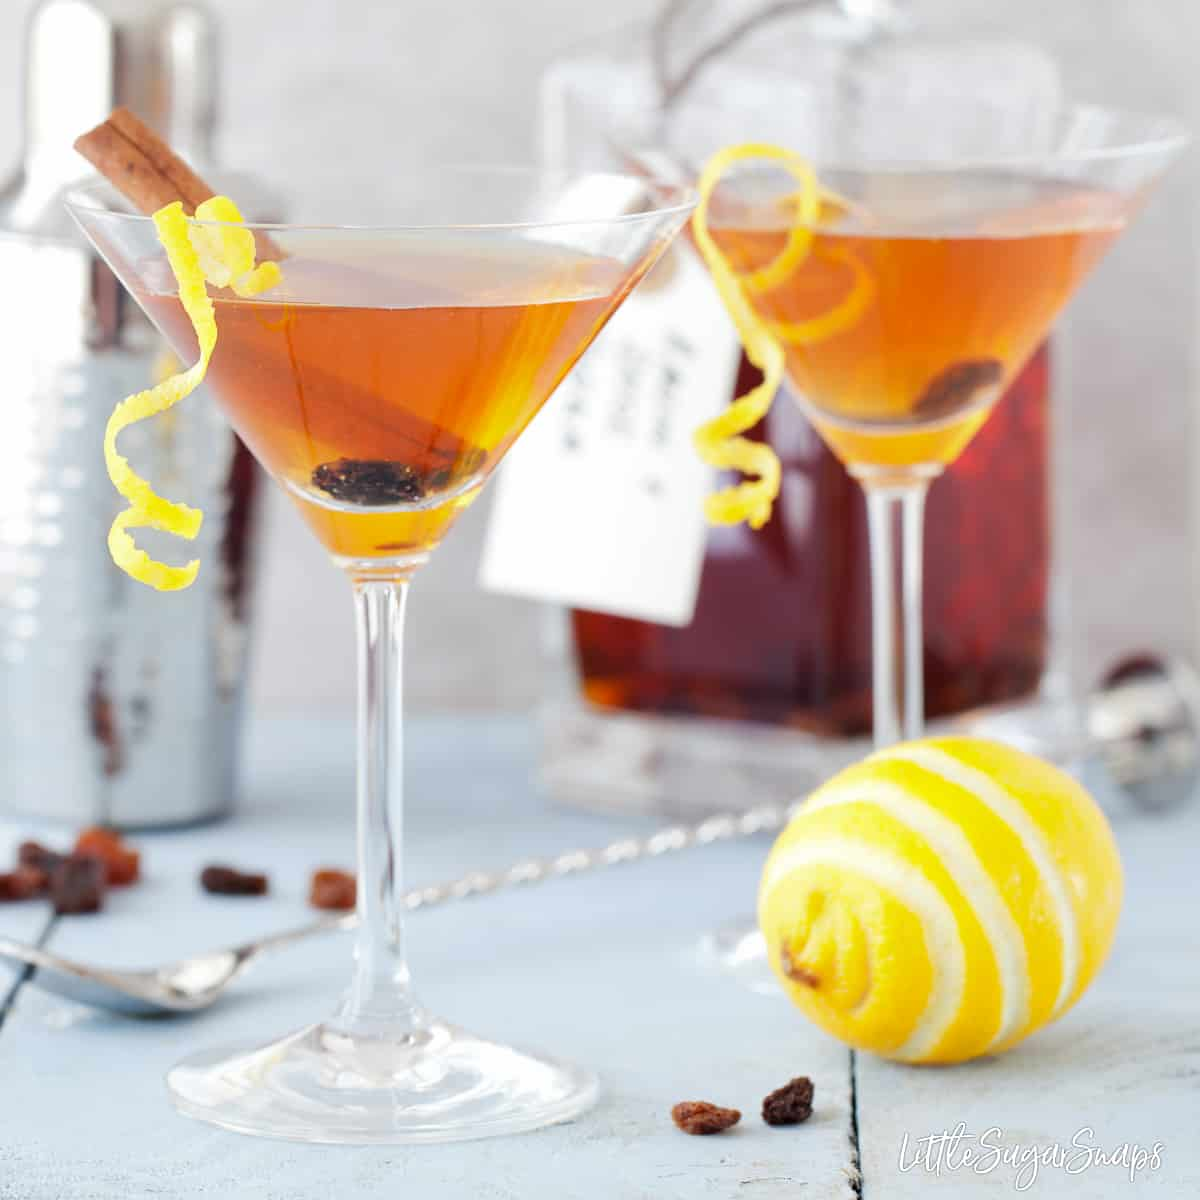 Easter Martinin inspired by Hot Cross Bun Flavours, garnished with lemon, cinnamon and raisin